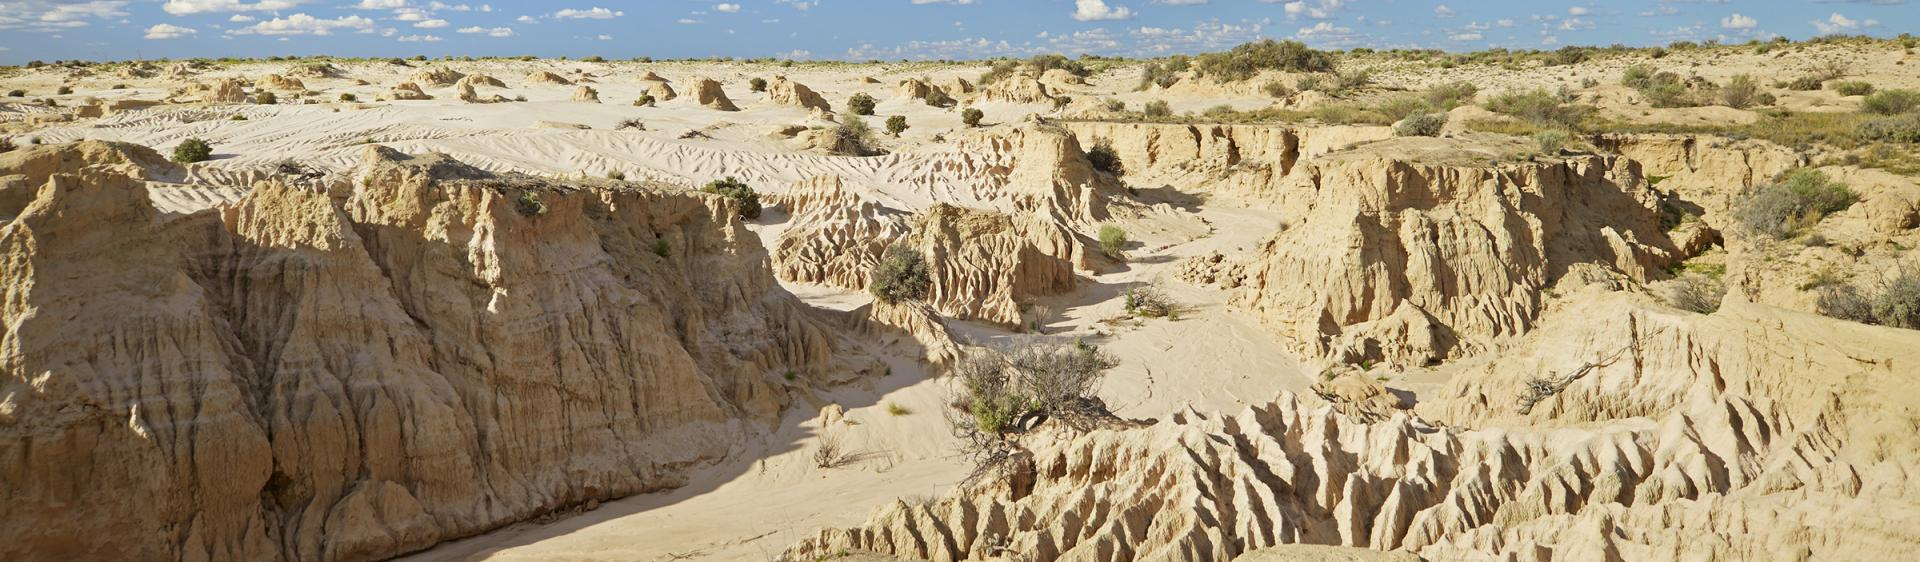 中國牆(Walls of China),蒙哥國家公園(Mungo National Park)